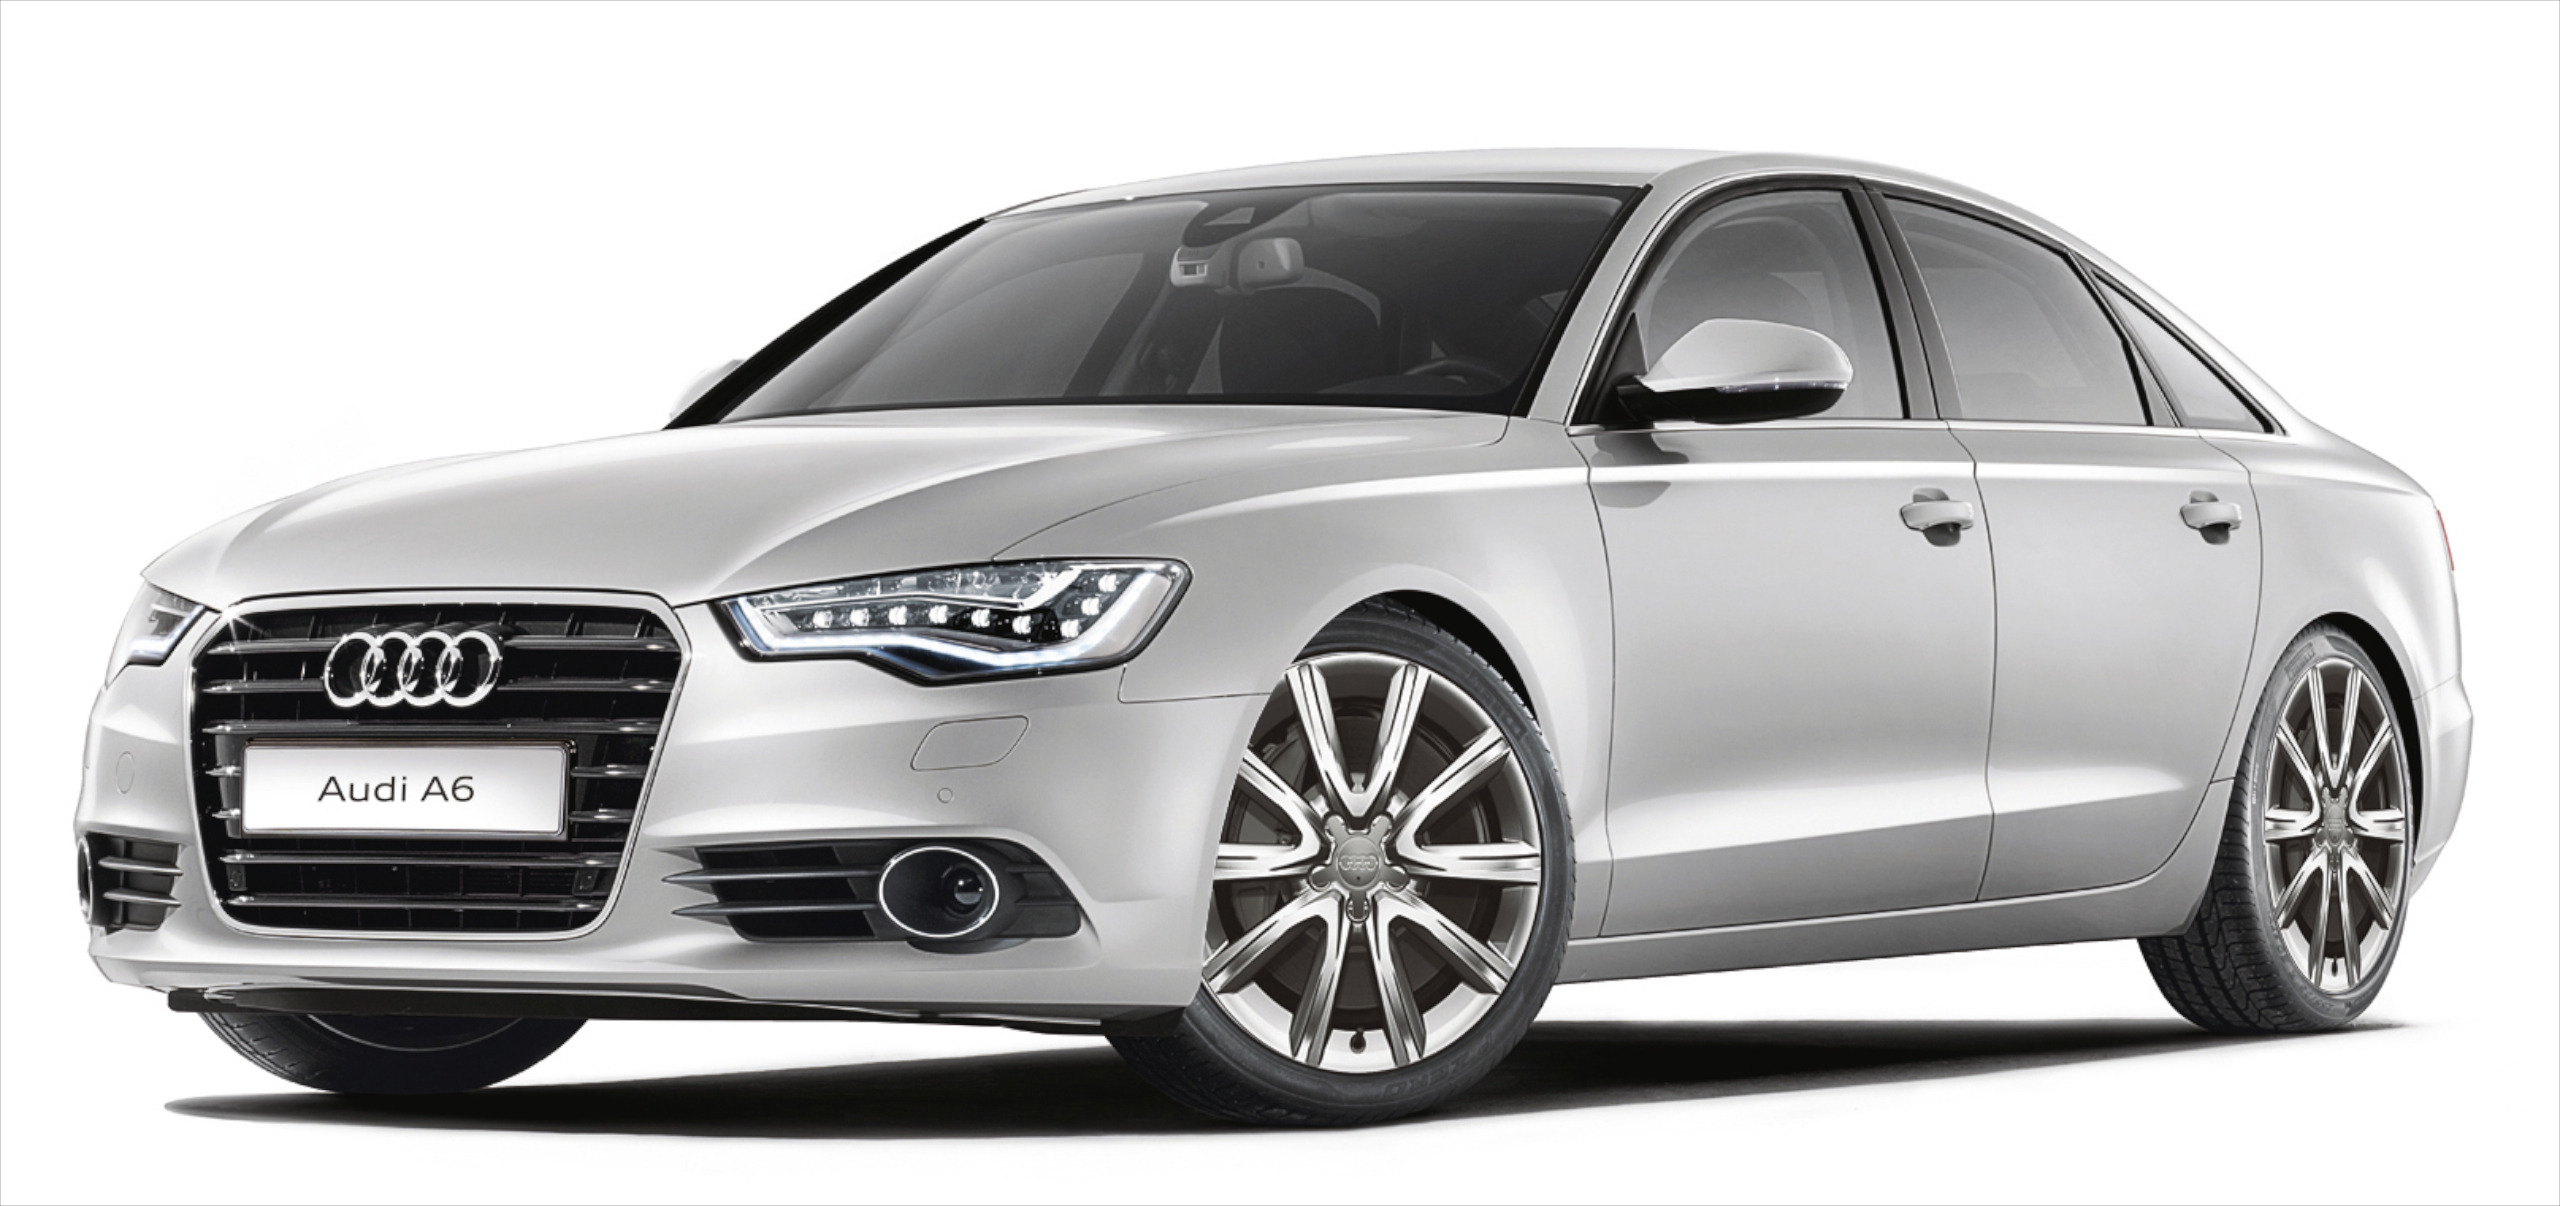 enhanced audi a6 2 0 tfsi introduced rm375k image 256623. Black Bedroom Furniture Sets. Home Design Ideas